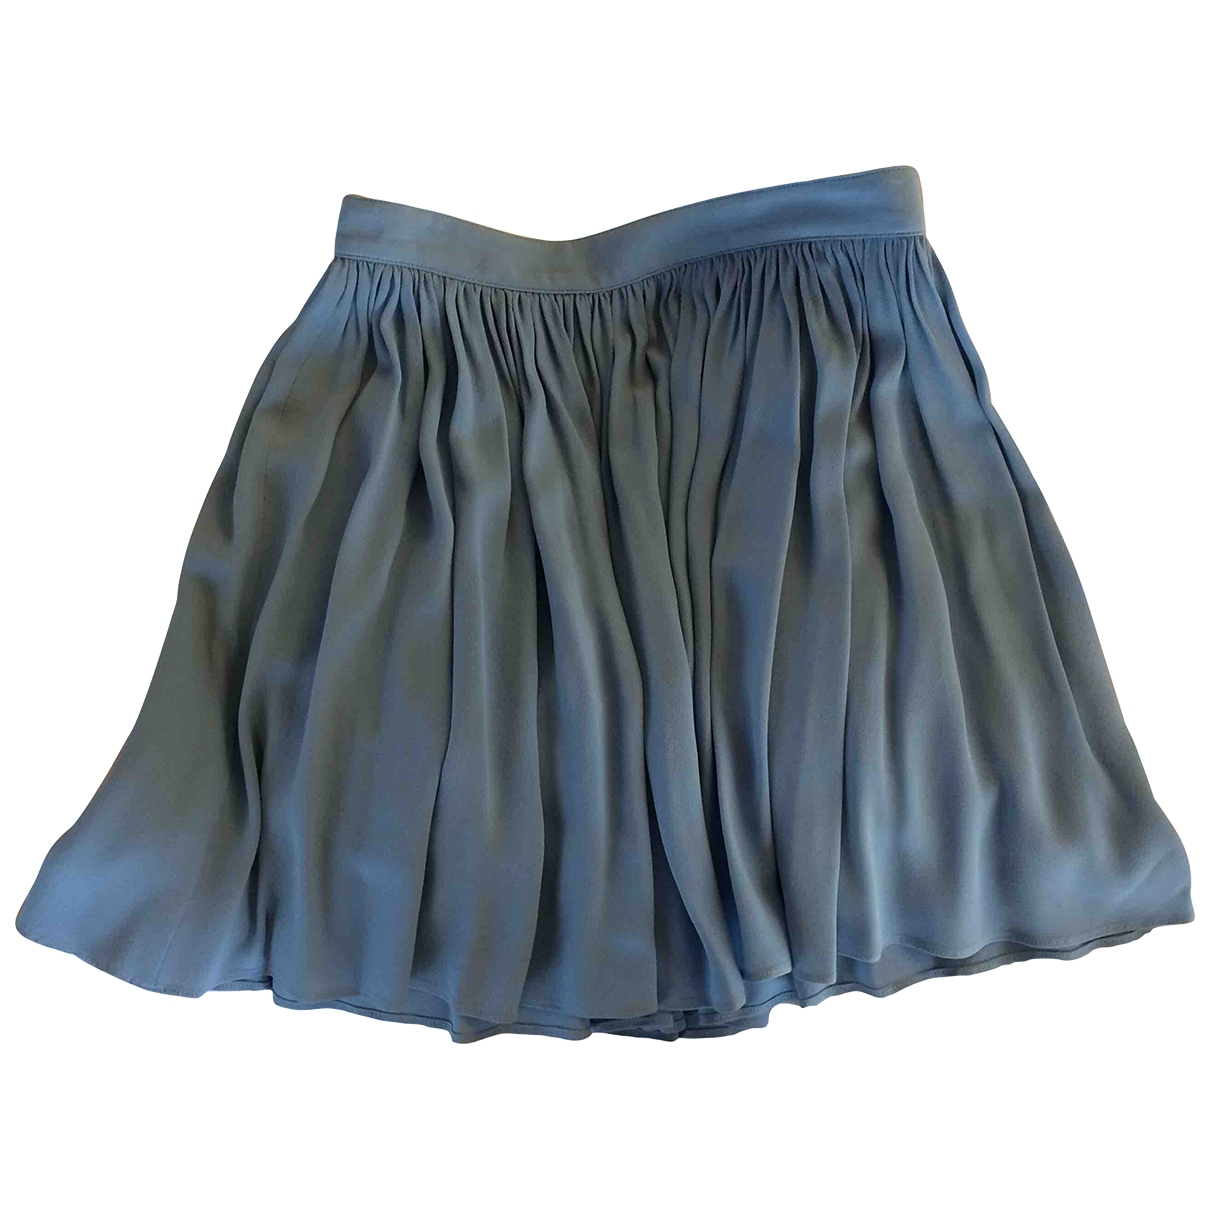 Mauro Grifoni \N Silk skirt for Women 38 IT